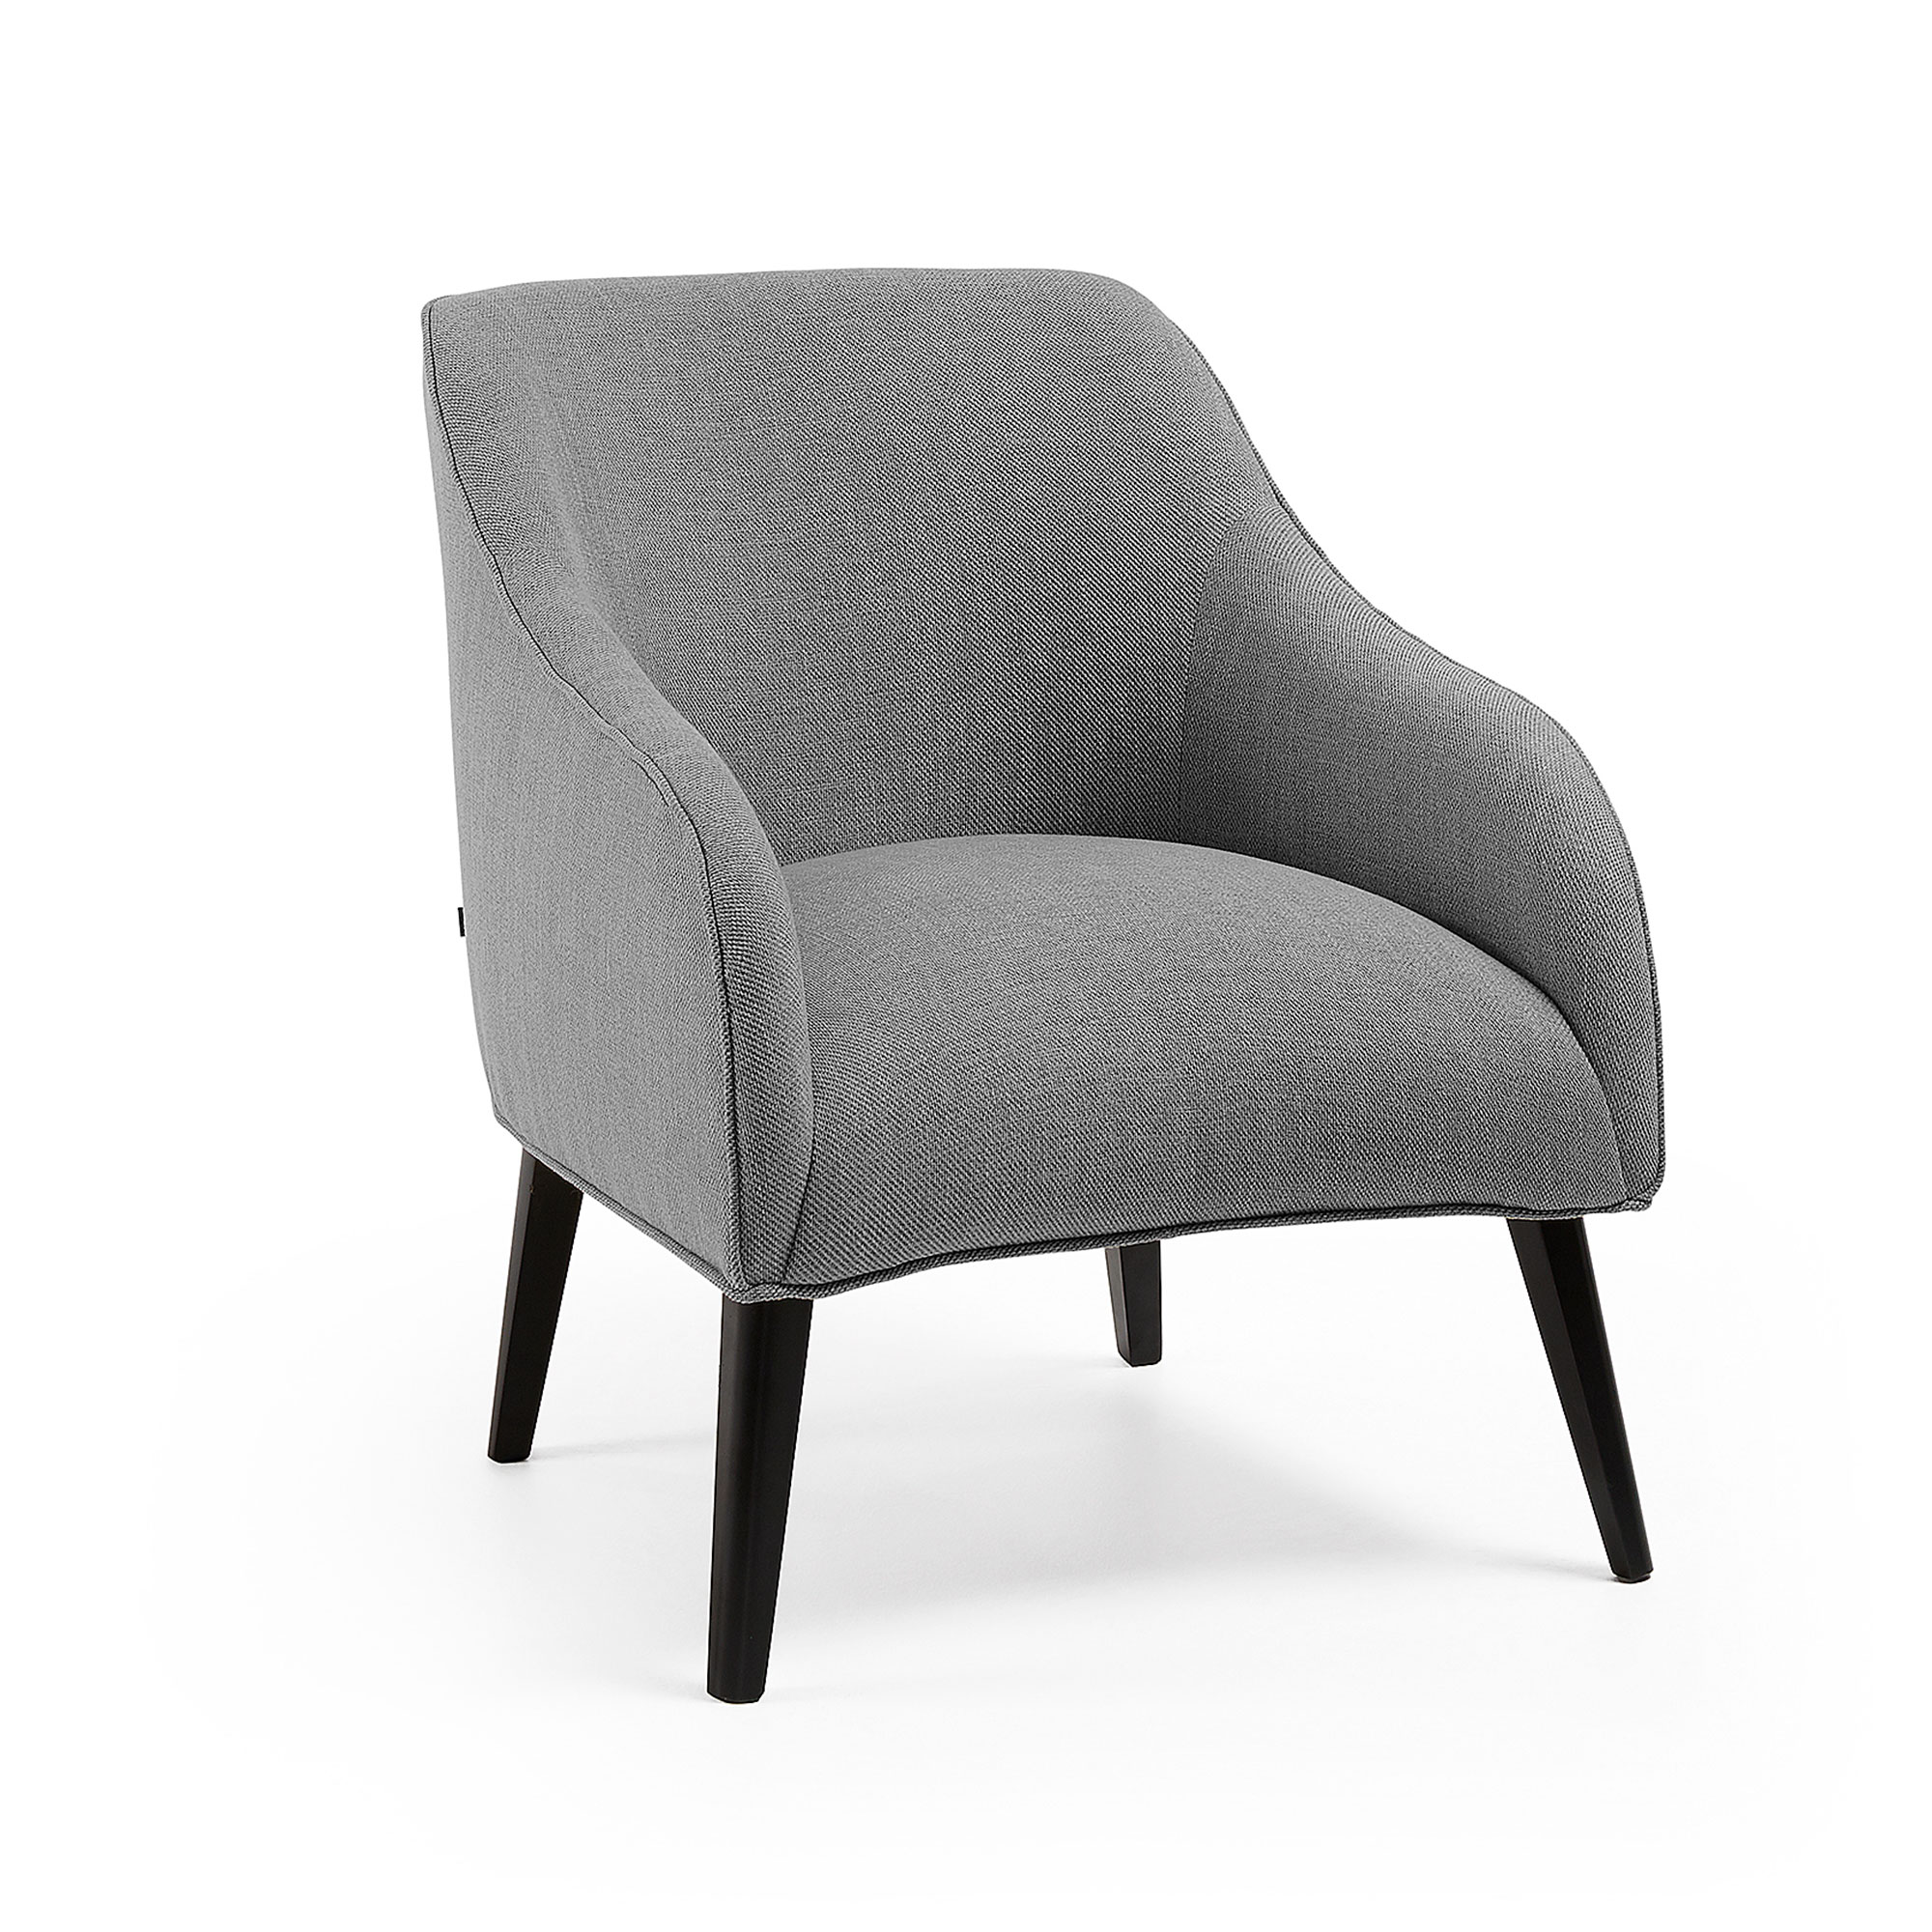 Kave Home Fauteuil 'Bobly', kleur Donkergrijs Kave Home te koop